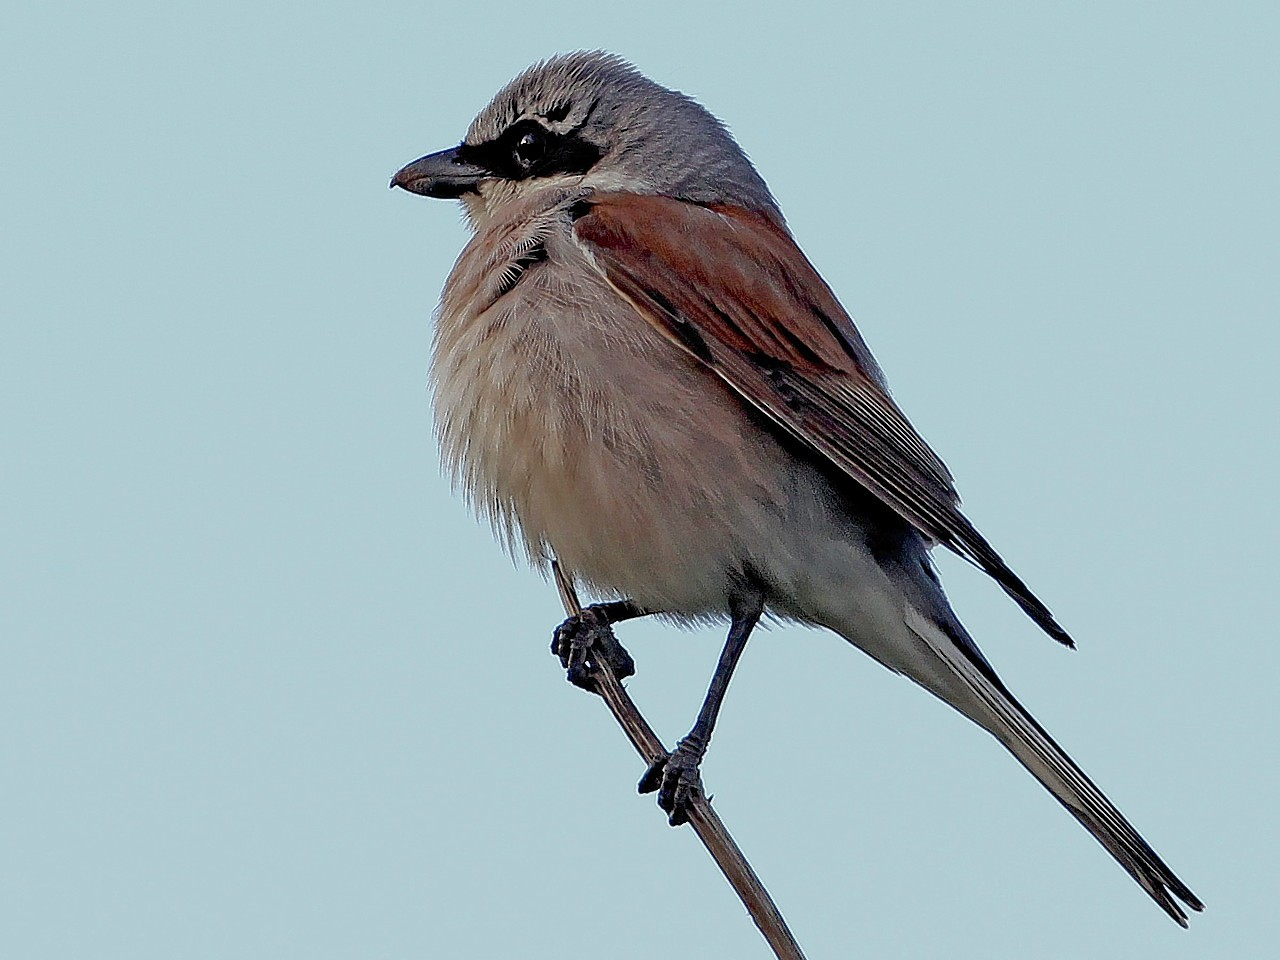 A red-backed shrike